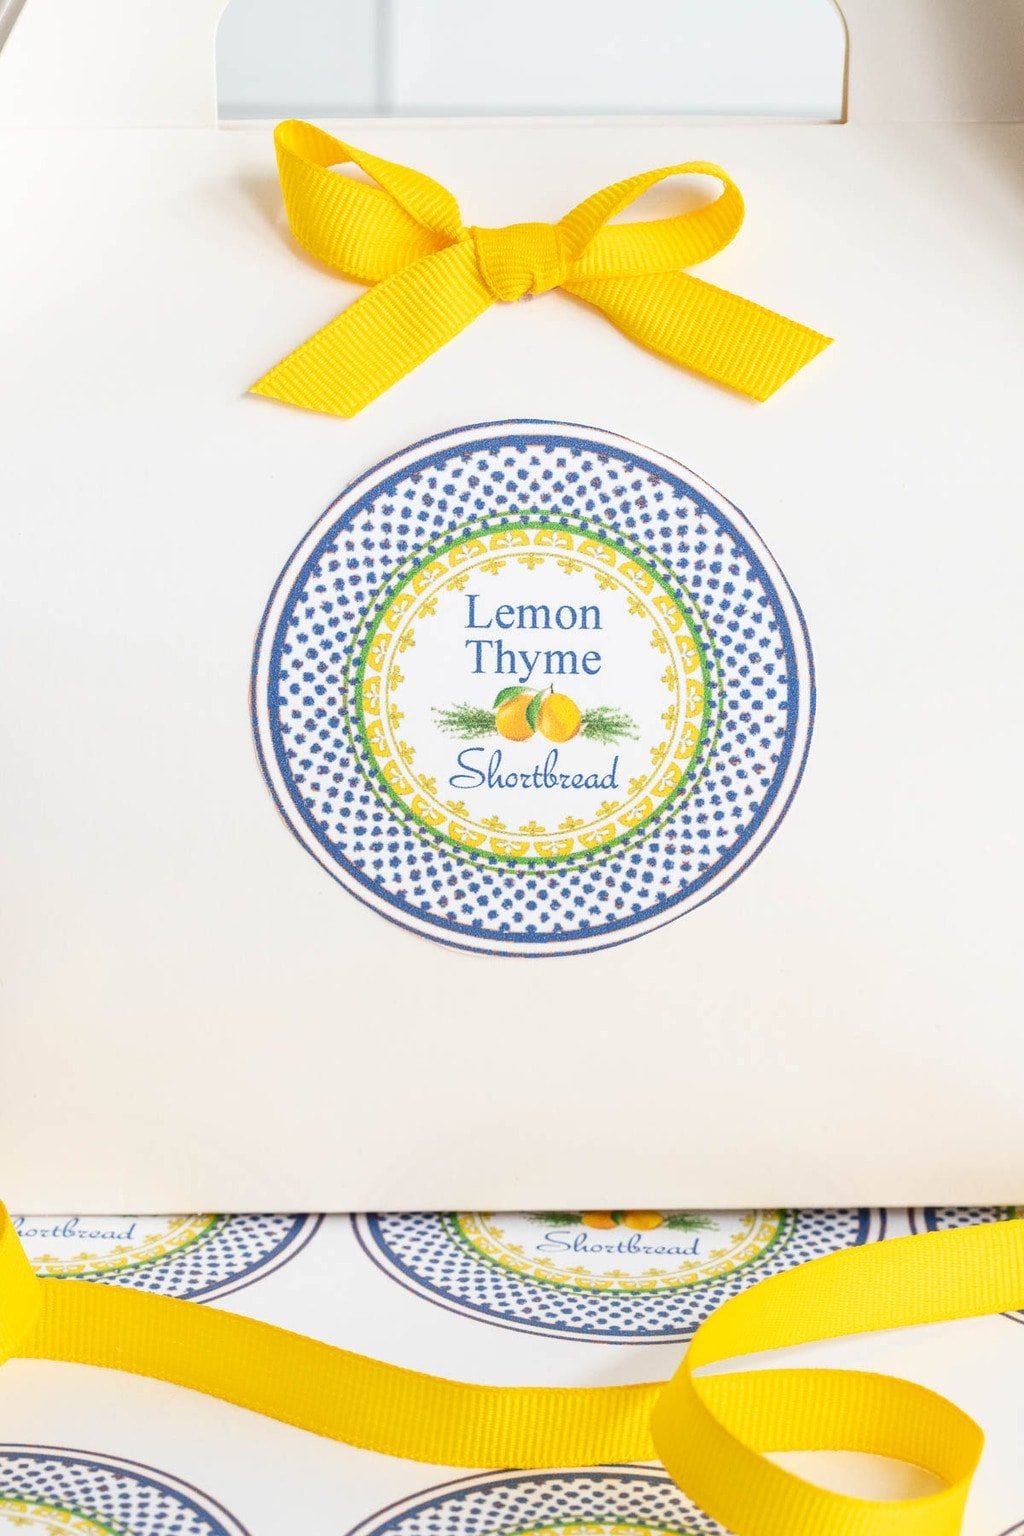 Vertical photo of a white gift box for gifting Lemon Thyme Shortbread including a custom label.